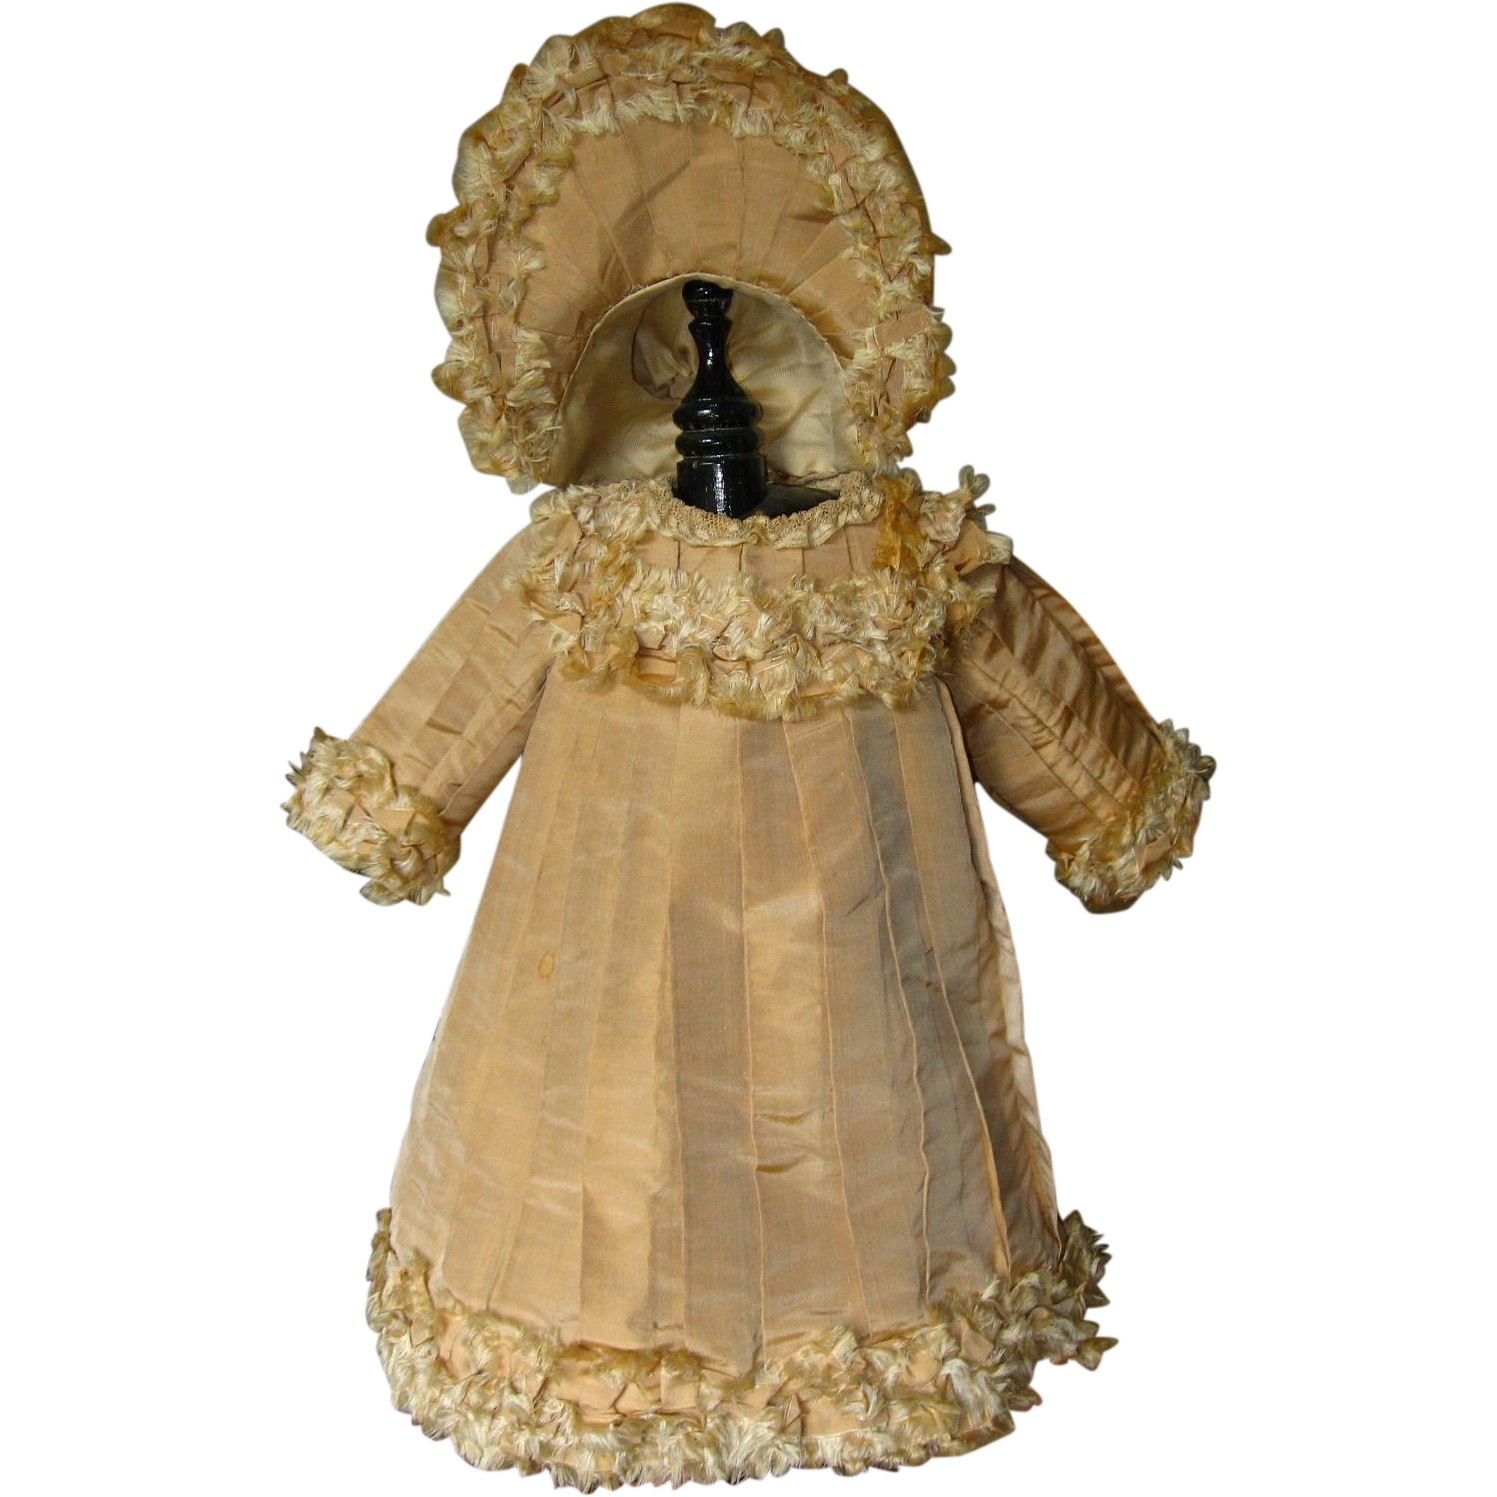 Gorgeous Beige Silk Doll Dress with Hat